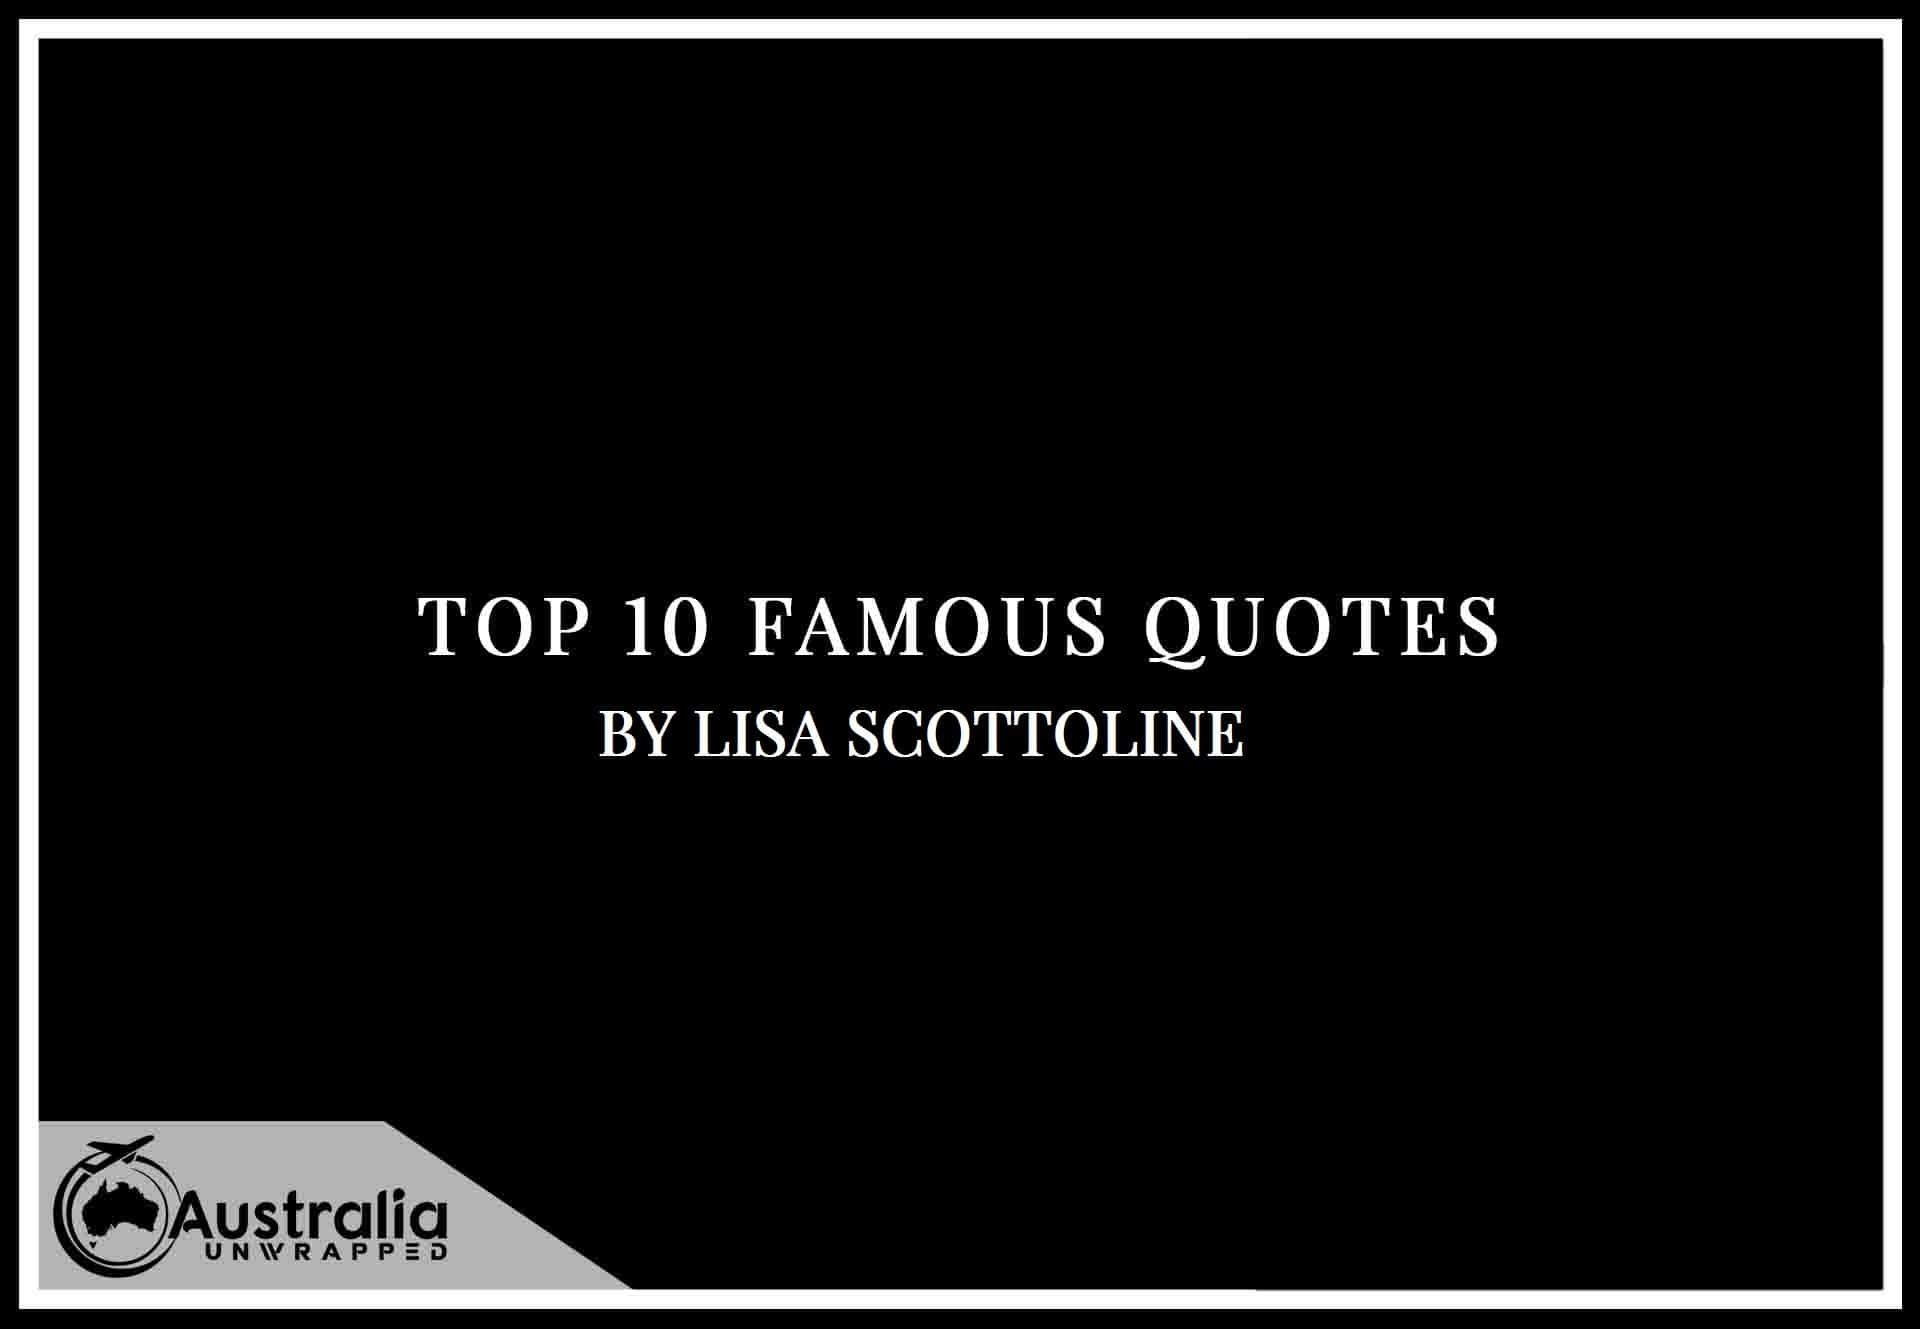 Lisa Scottoline's Top 10 Popular and Famous Quotes